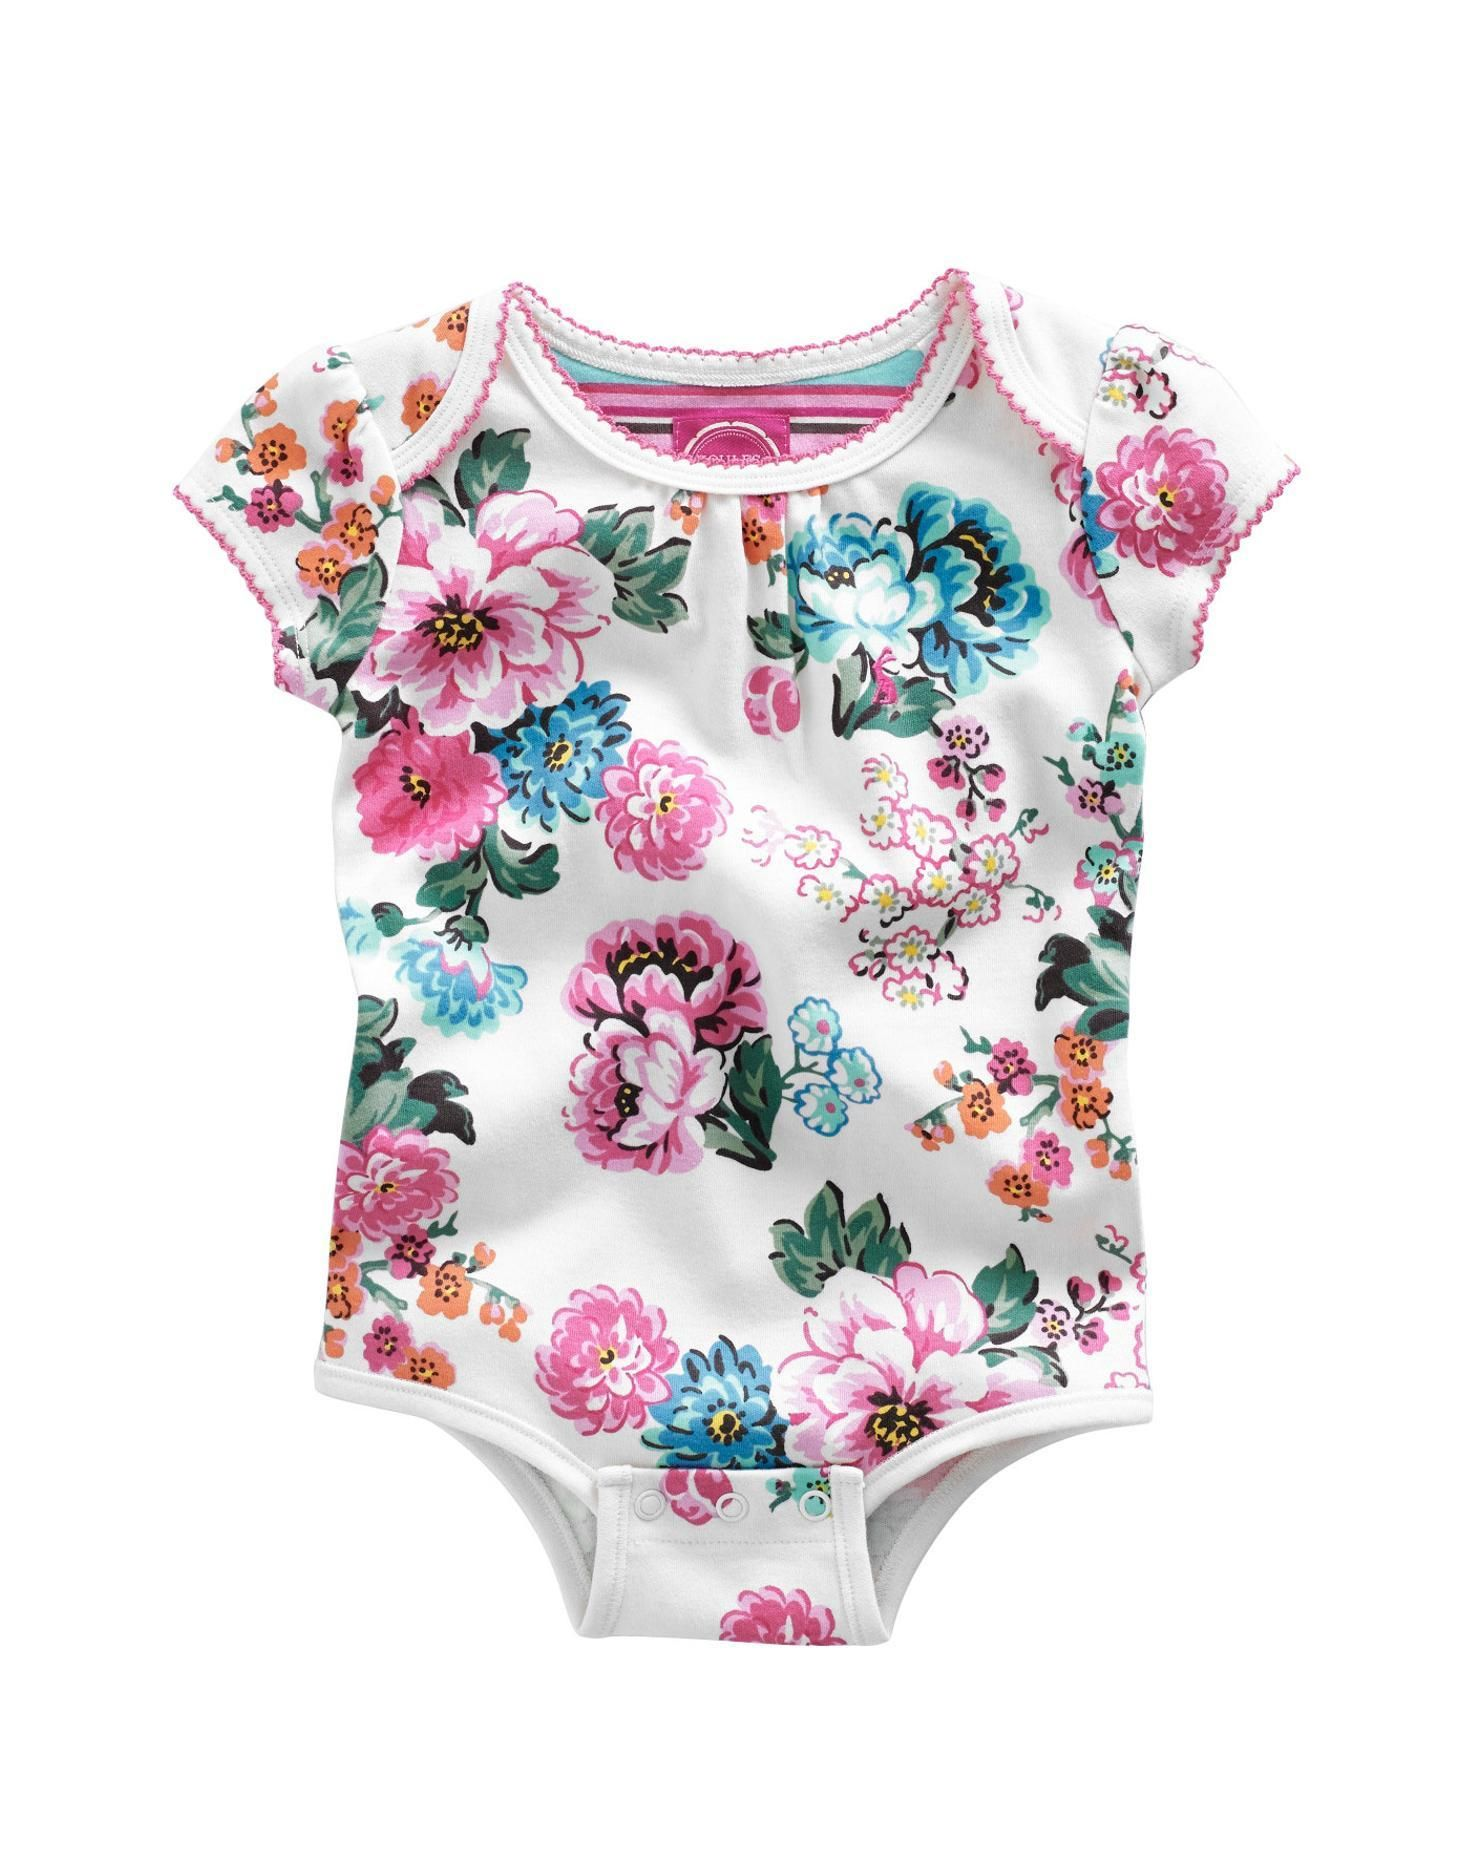 The Romper, Here's How to Dress Our Baby in Summer